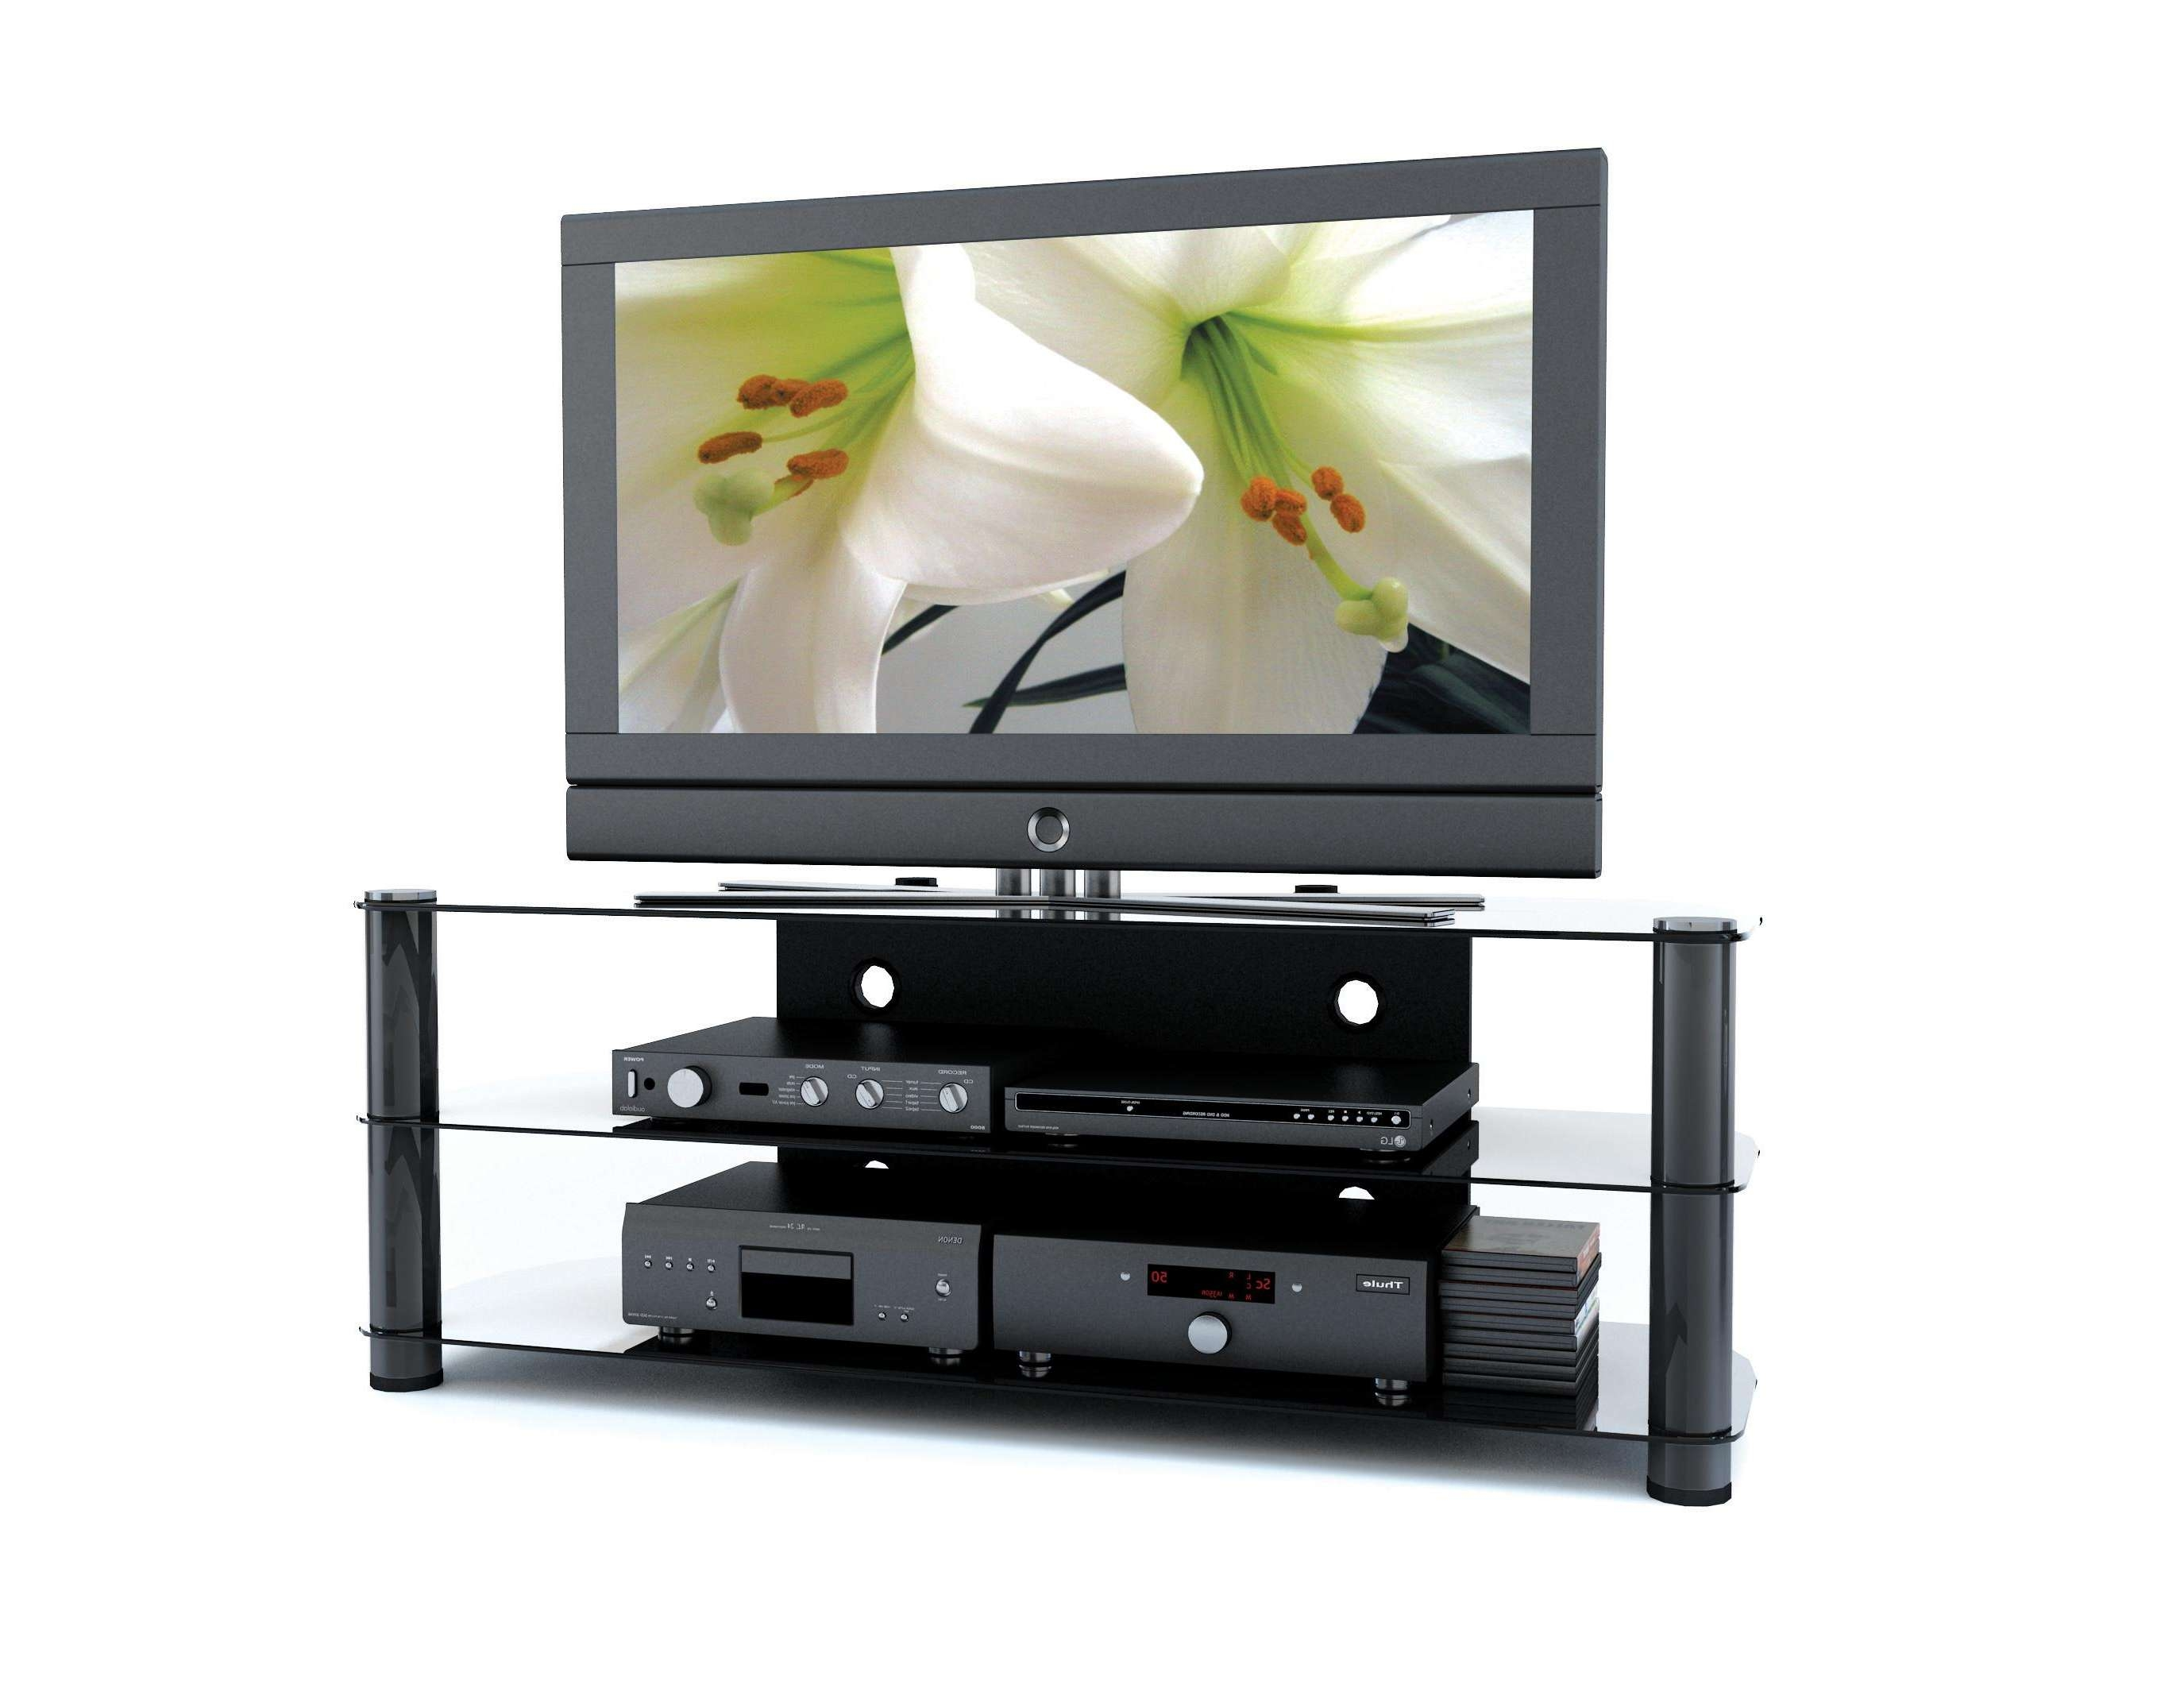 Inch Tv Stand With Modern Glass Flat Screen Decoration Furniture Throughout Modern Glass Tv Stands (View 8 of 15)